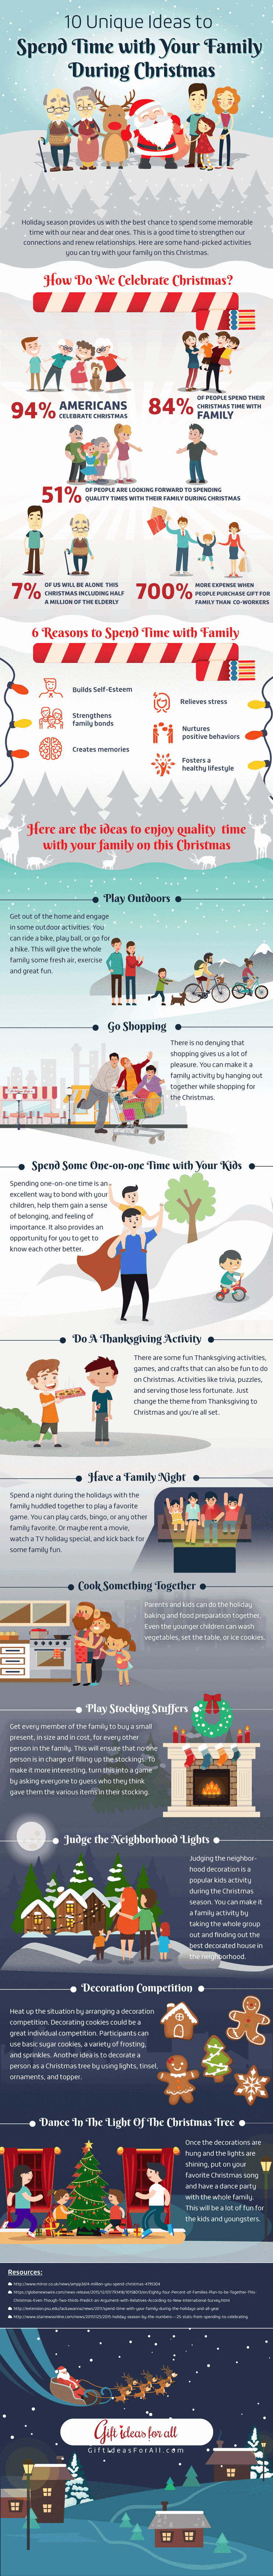 Looking For Unconventional Ways To Spend Christmas With Your Family? - Infographic